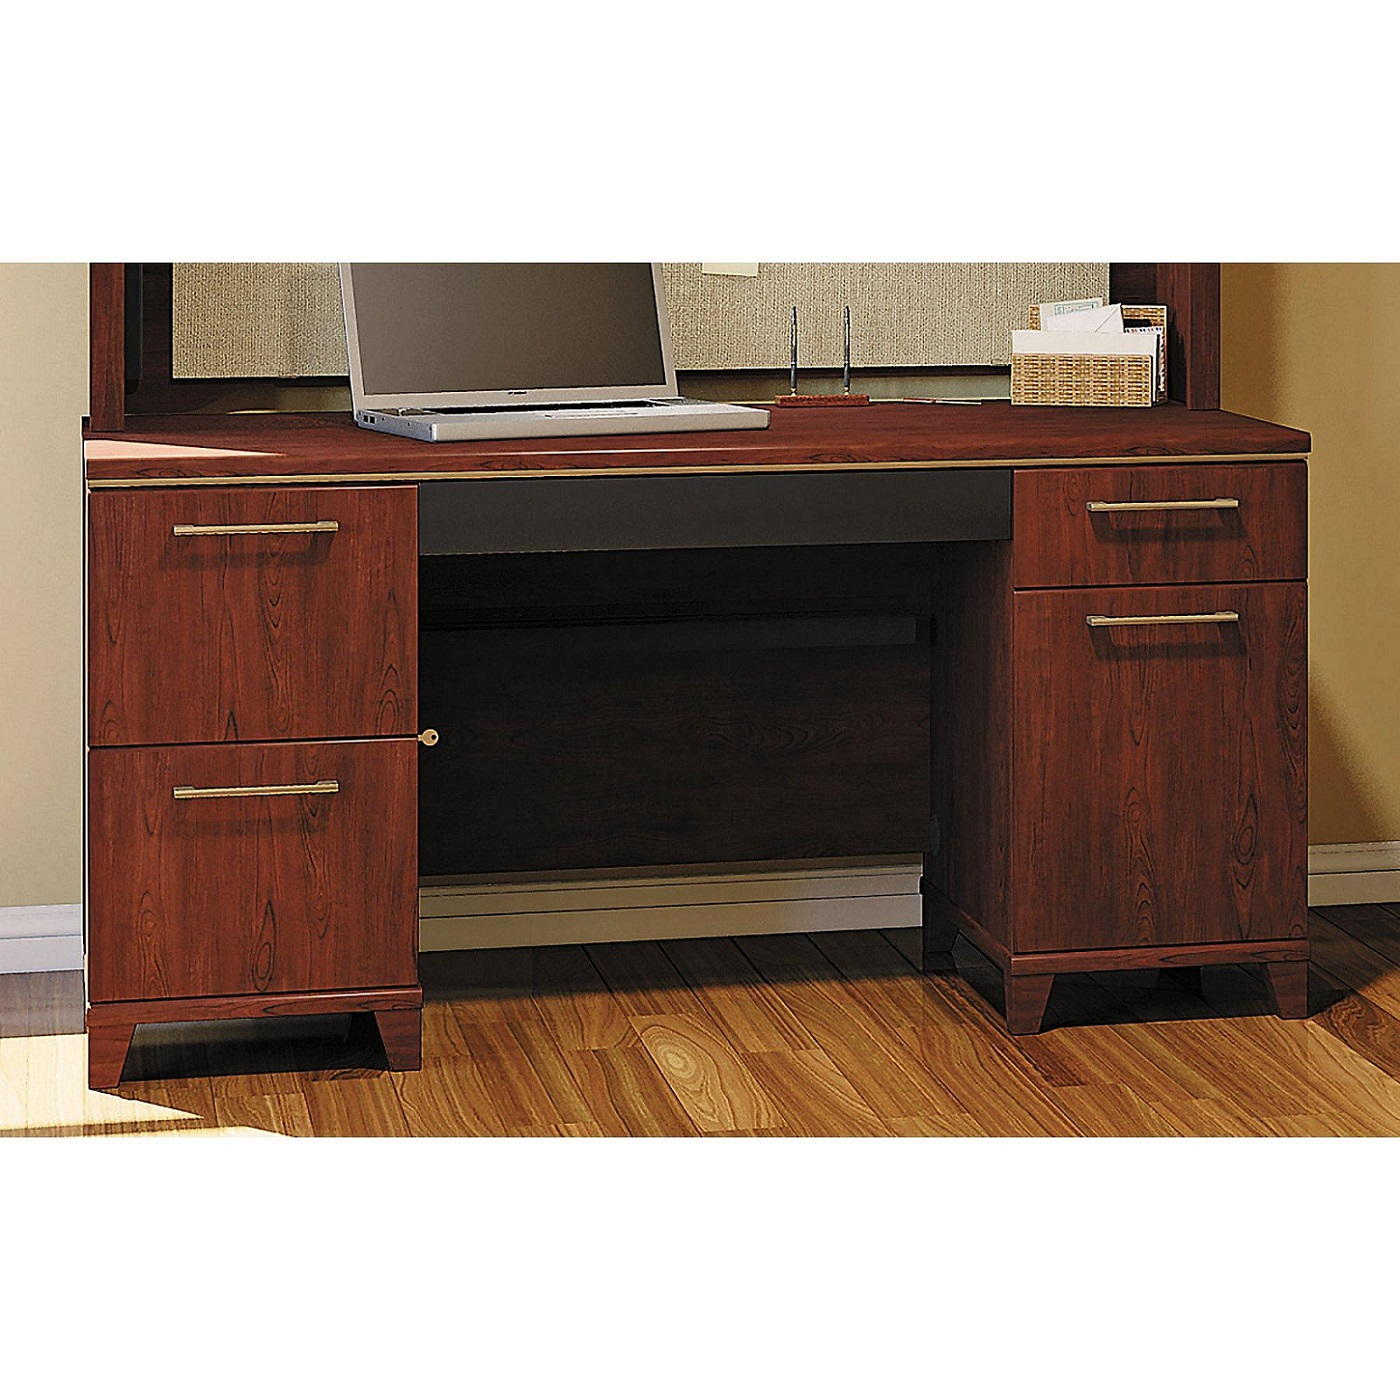 "<b><font color=#c60>BUSH BUSINESS FURNITURE HARVEST CHERRY 60""W OFFICE DESK - 2 PEDS EH-2960CS-03K. FREE SHIPPING:</b></font>"